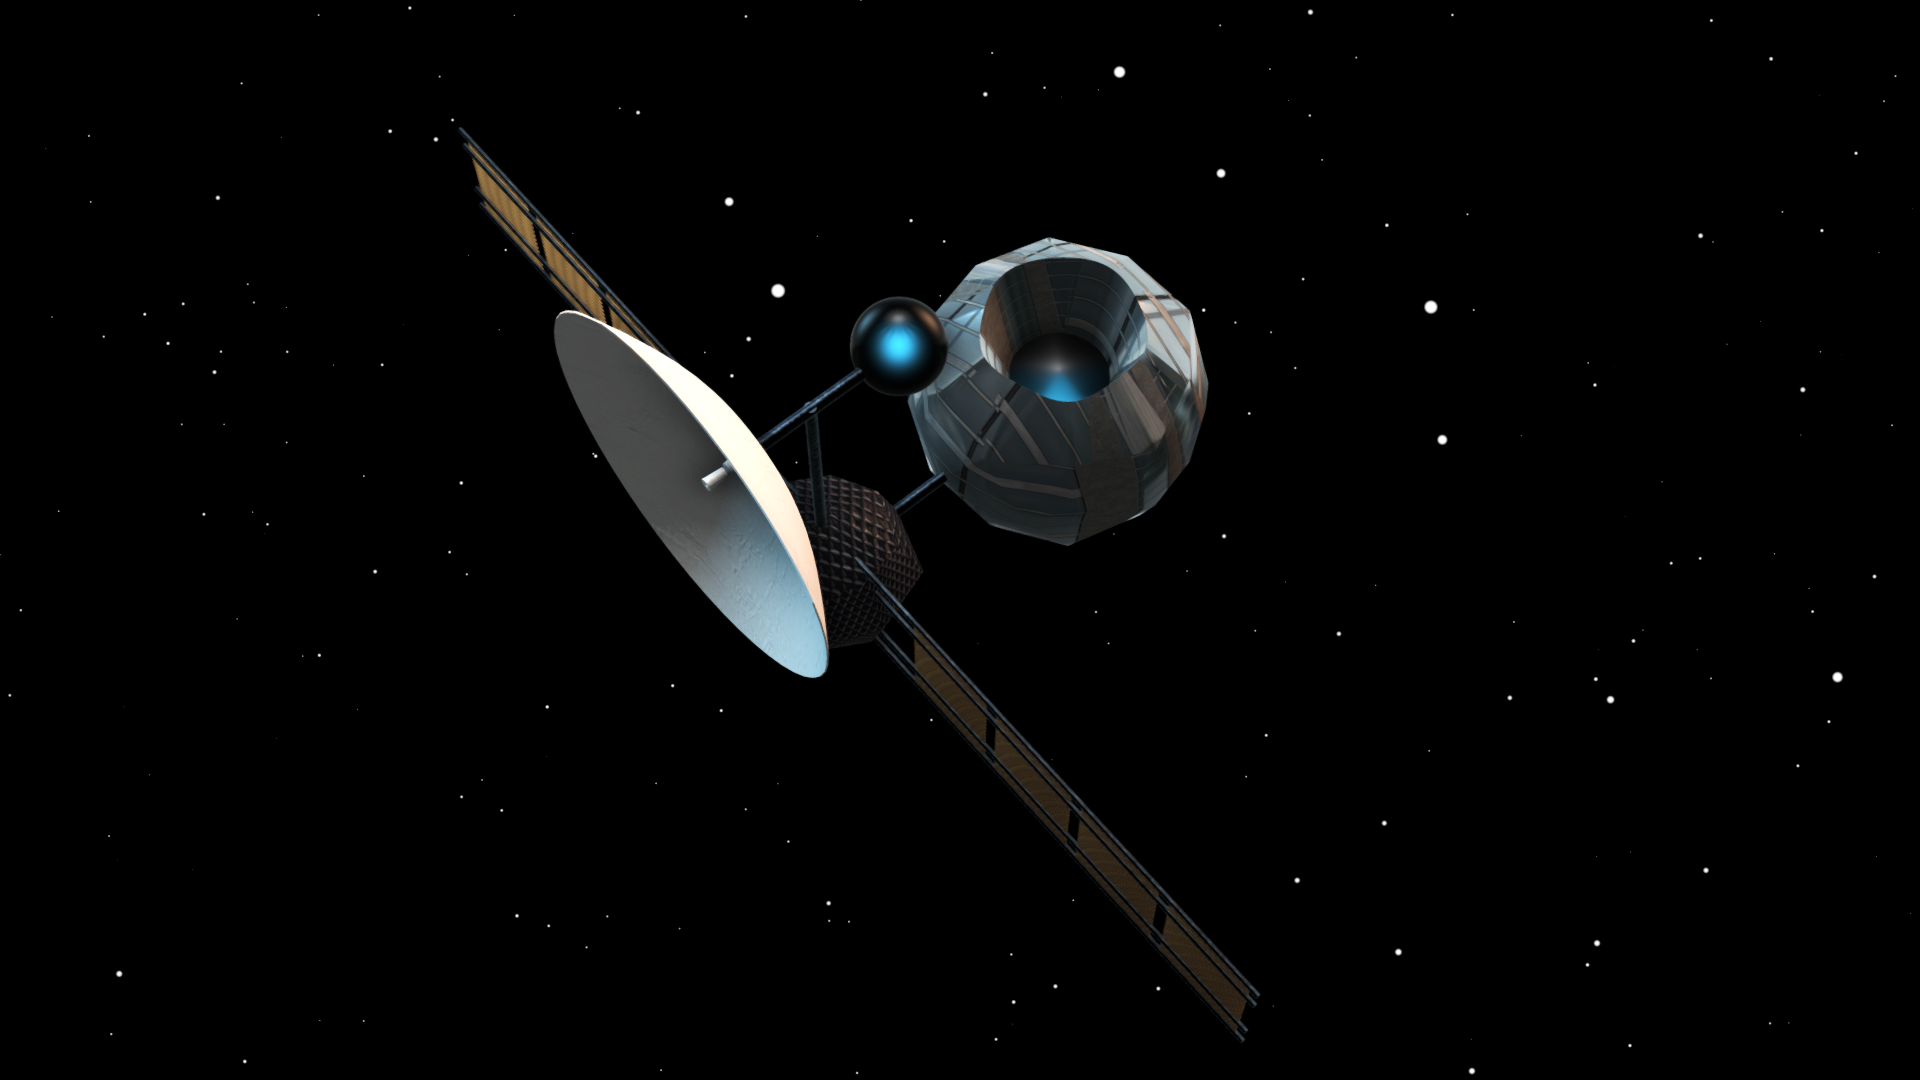 space probe pictures - photo #4